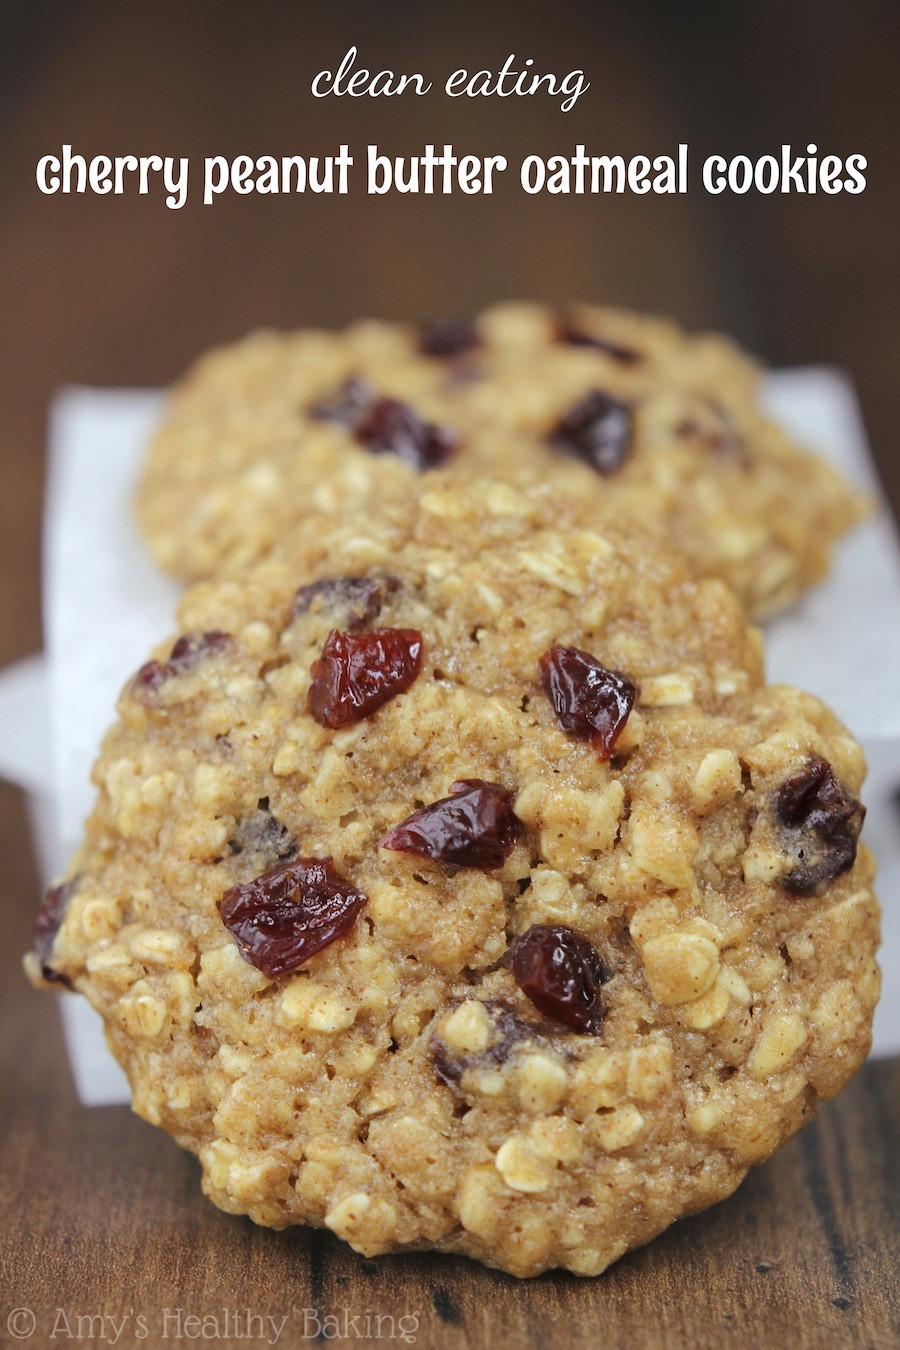 Healthy Peanut Butter Oatmeal Cookies  Cherry Peanut Butter Oatmeal Cookies